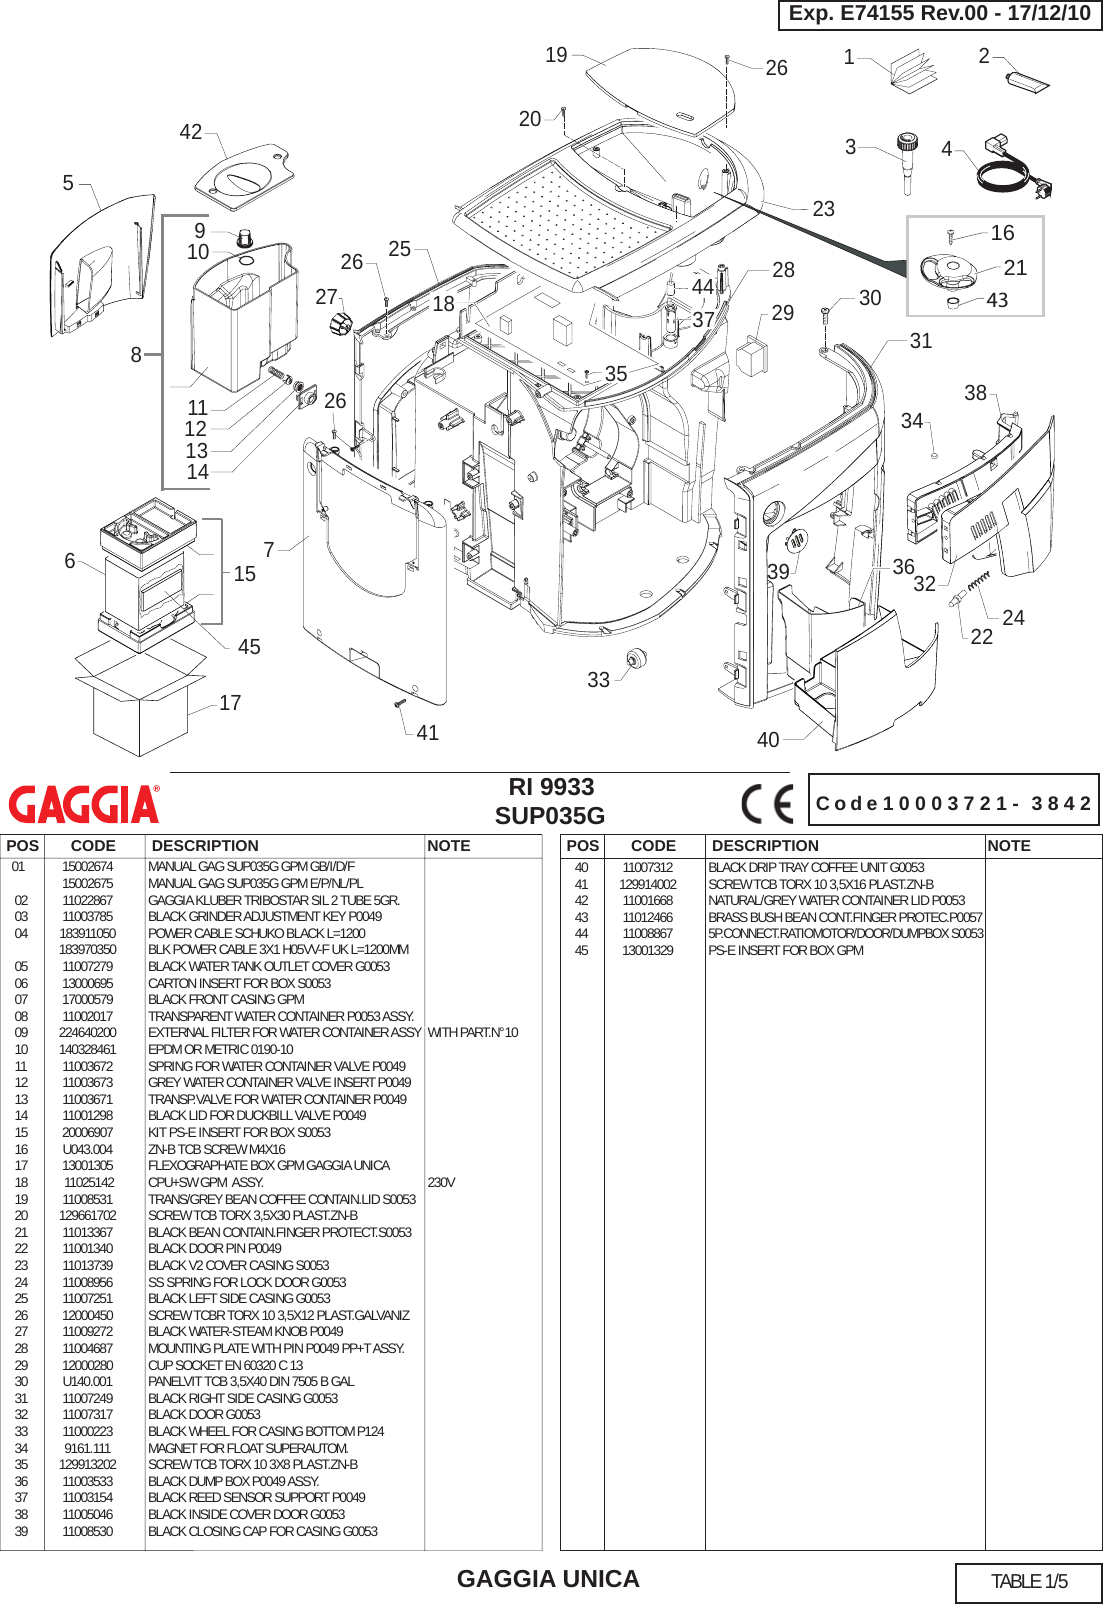 Gaggia Unica Parts Diagram E74155 Rev.00(SUP035G) User Manual